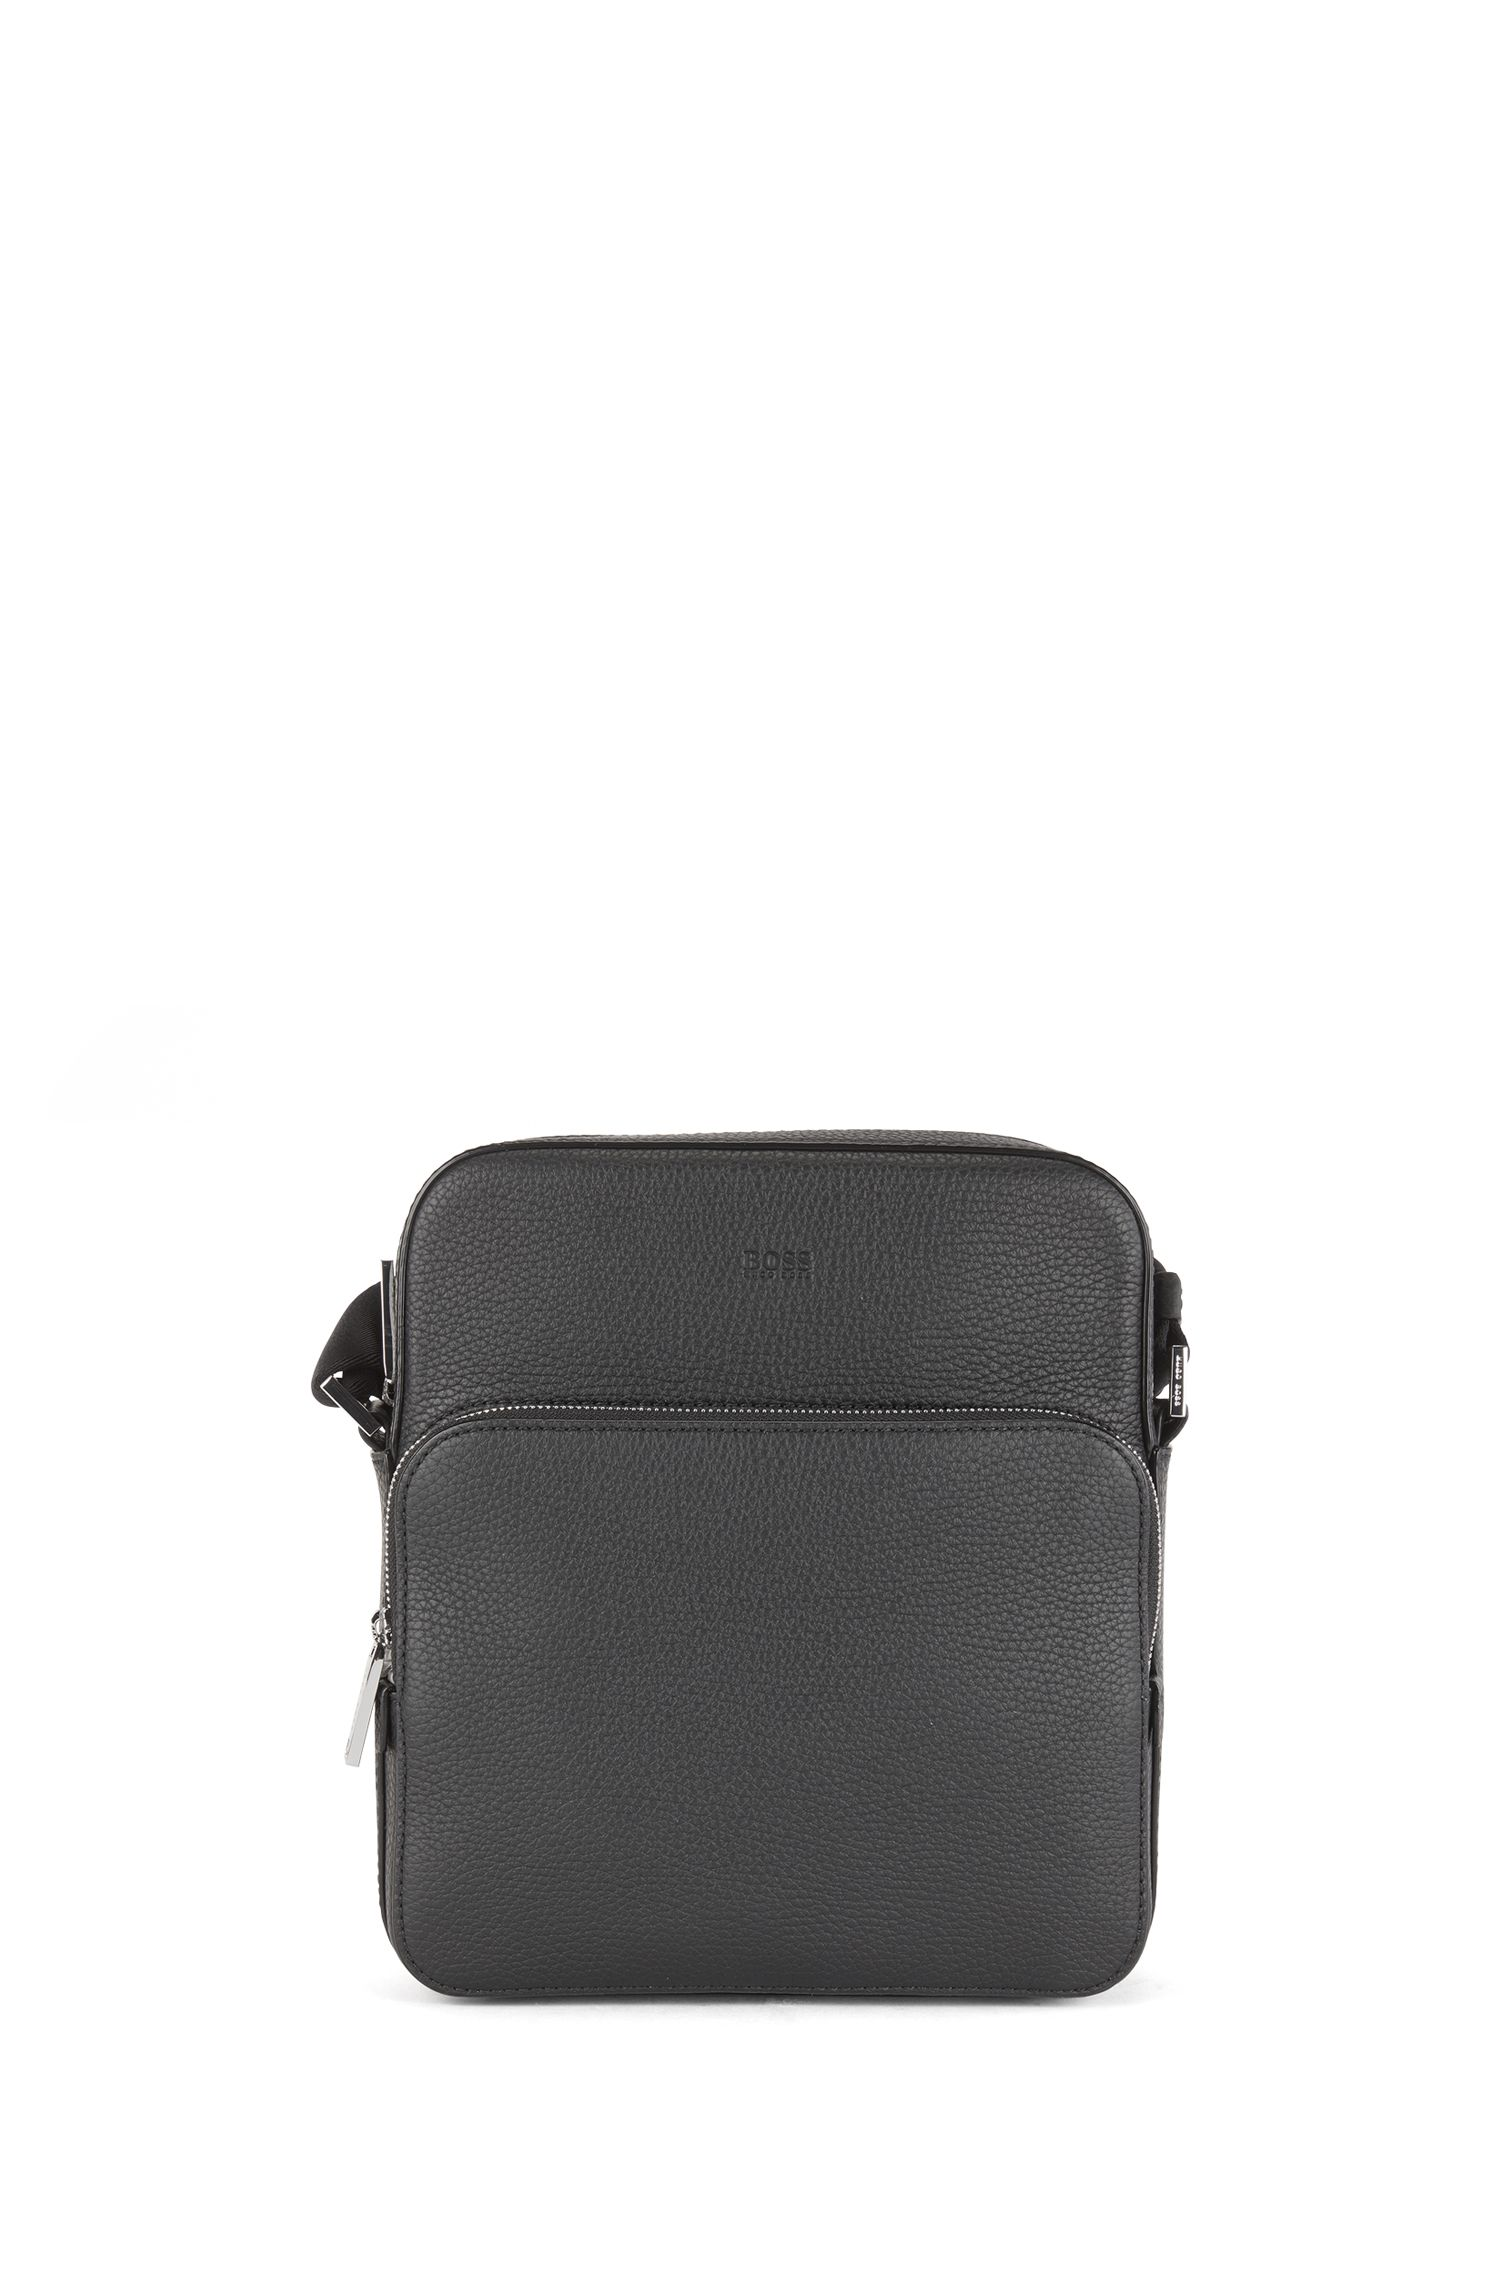 Reporter-style bag in grainy Italian leather, Black